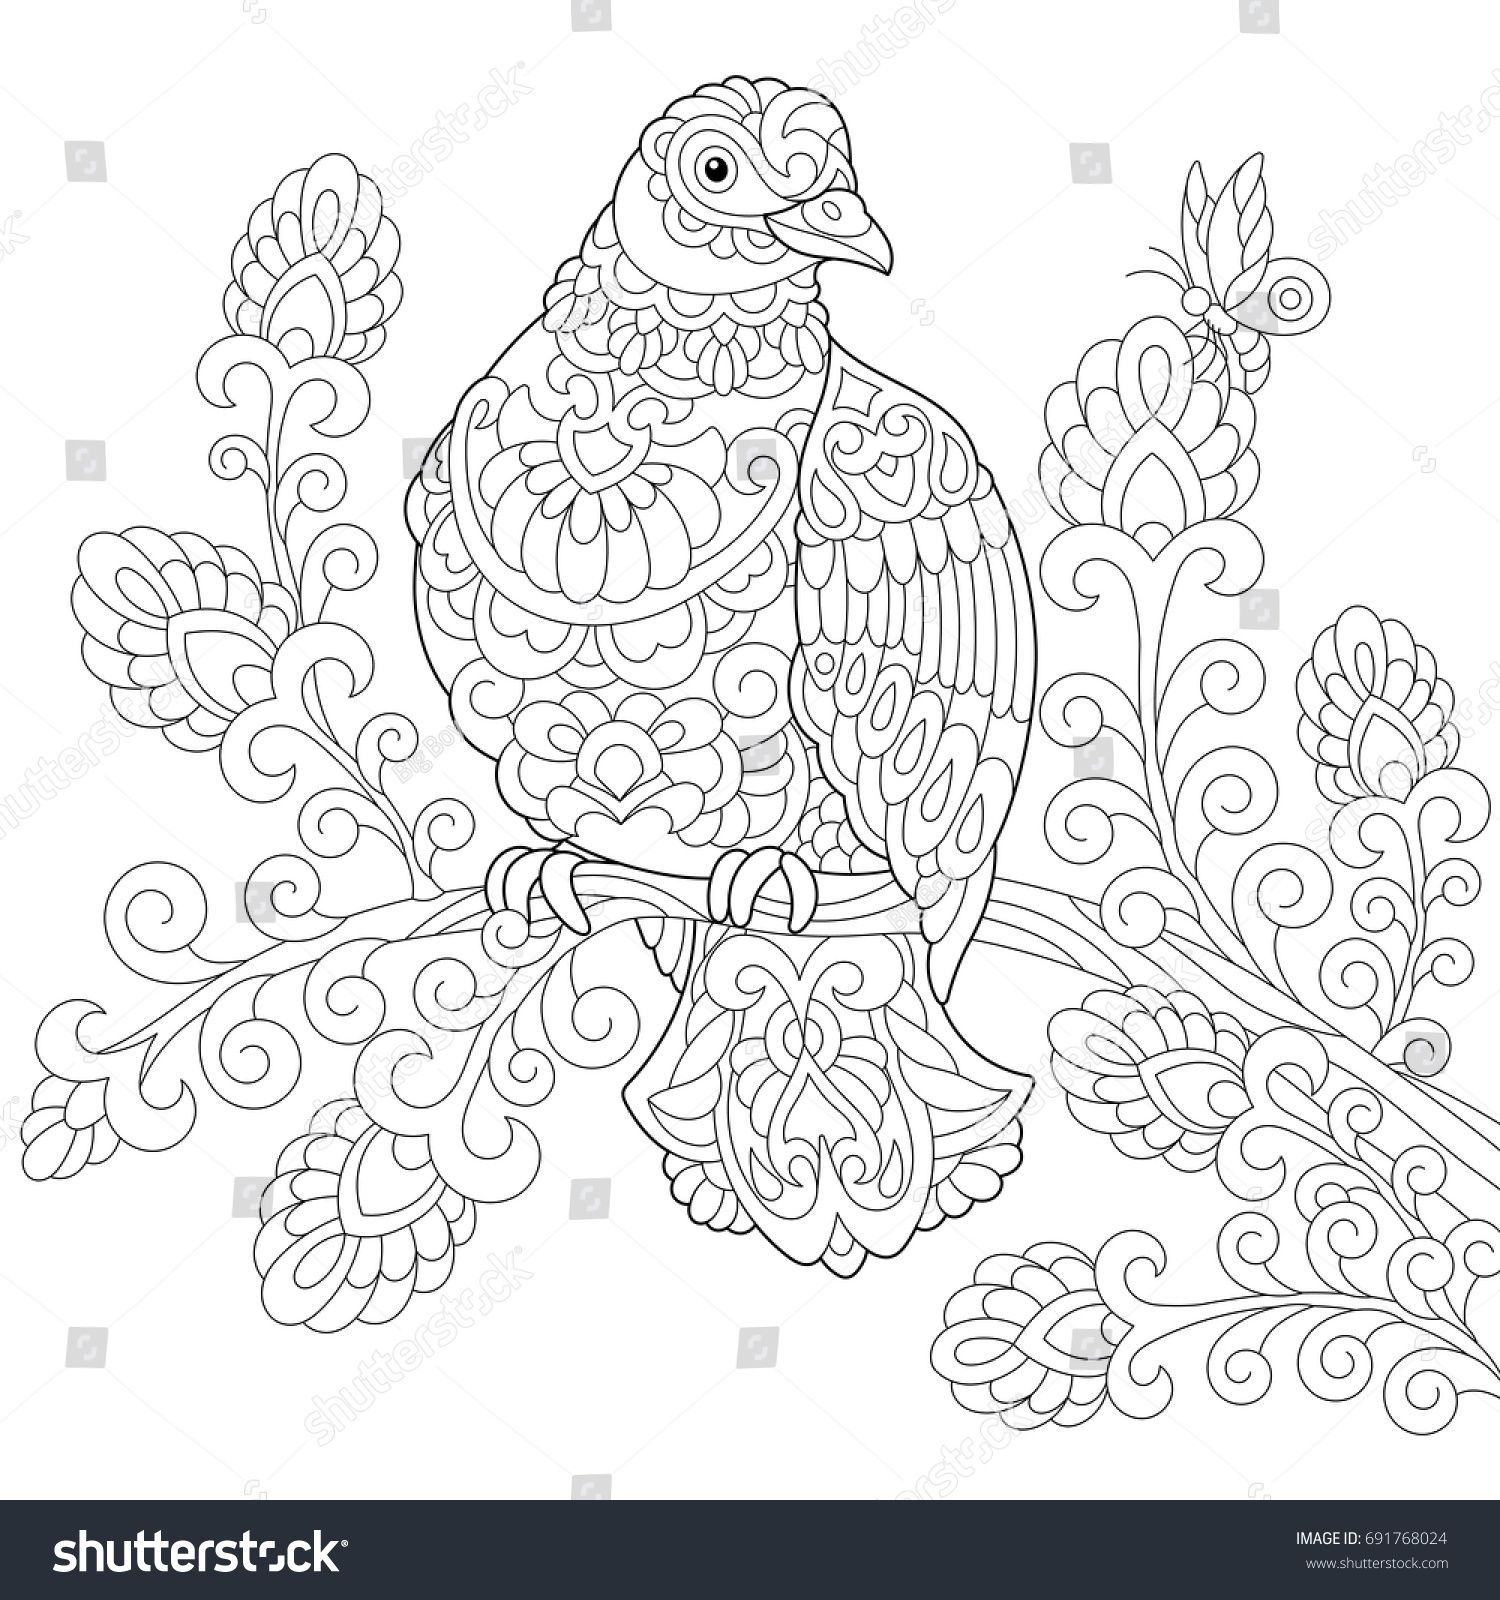 Coloring page of dove pigeon bird freehand sketch drawing for adult antistress colouring book with doodle and zentangle elements